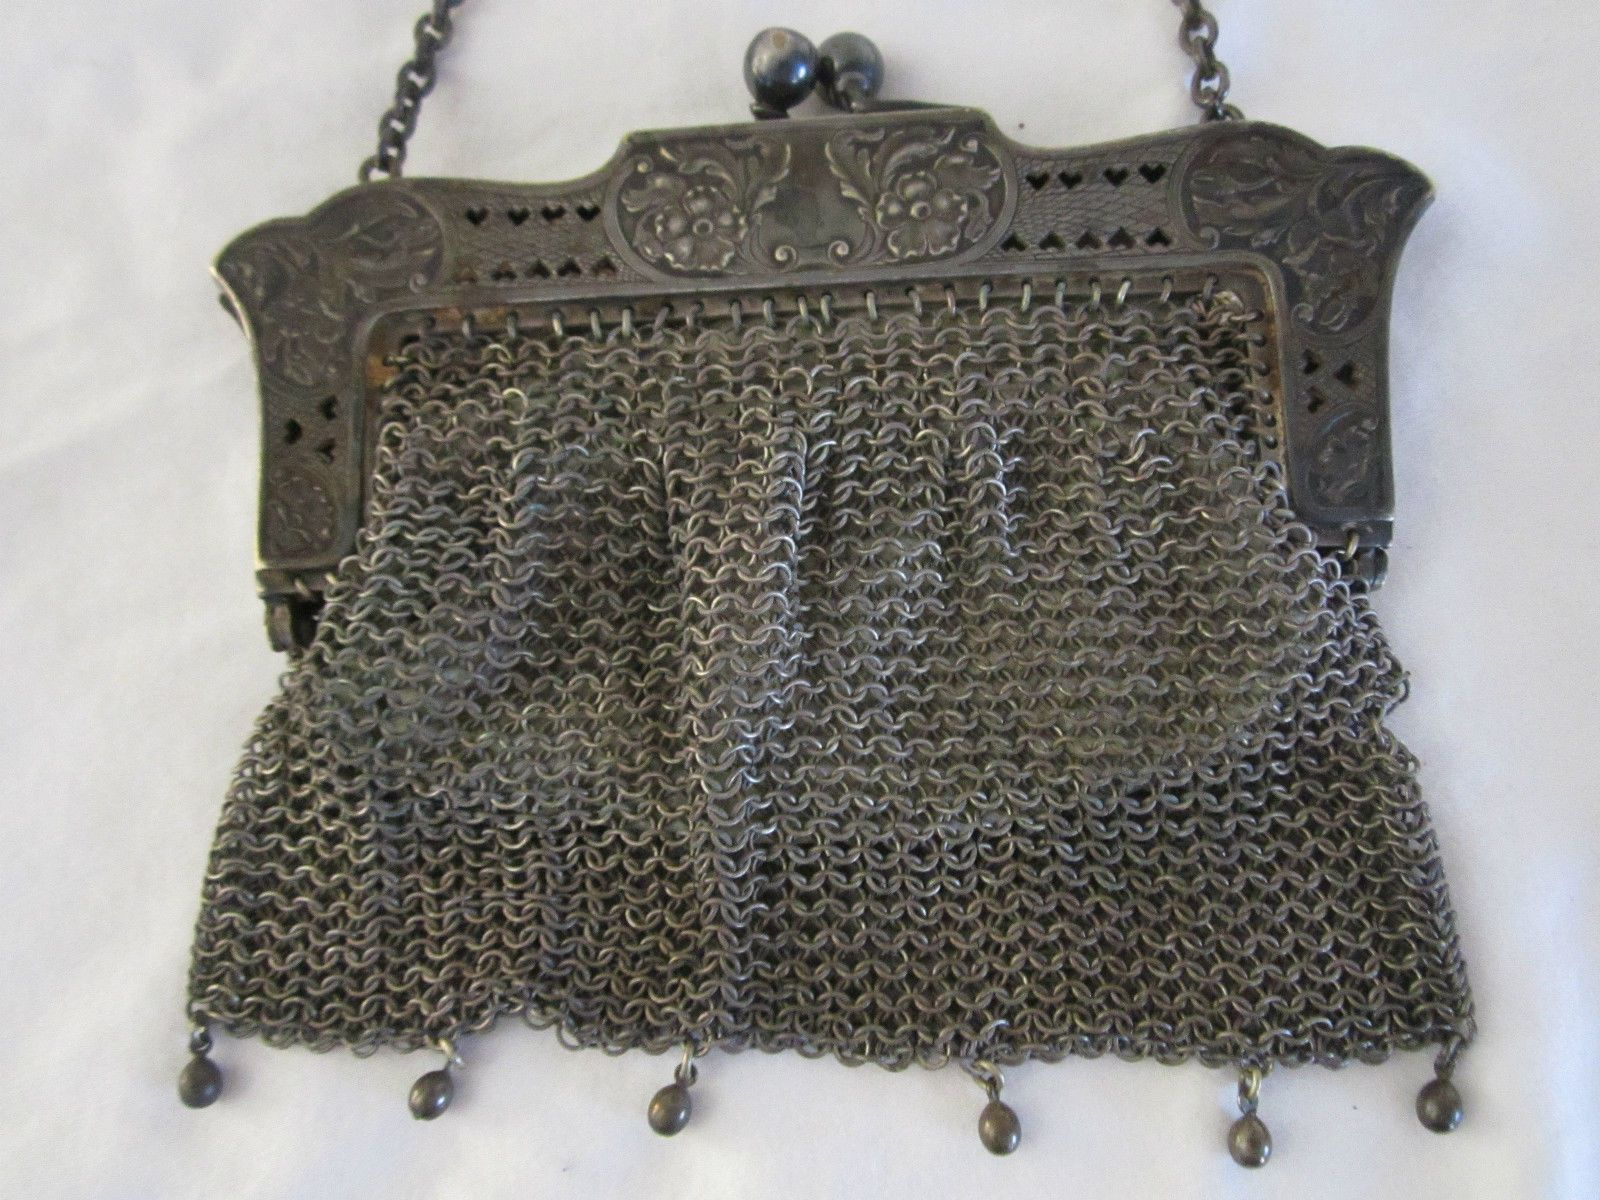 Antique Victorian Art Noveau German Silver Mesh Pocketbook with Chain